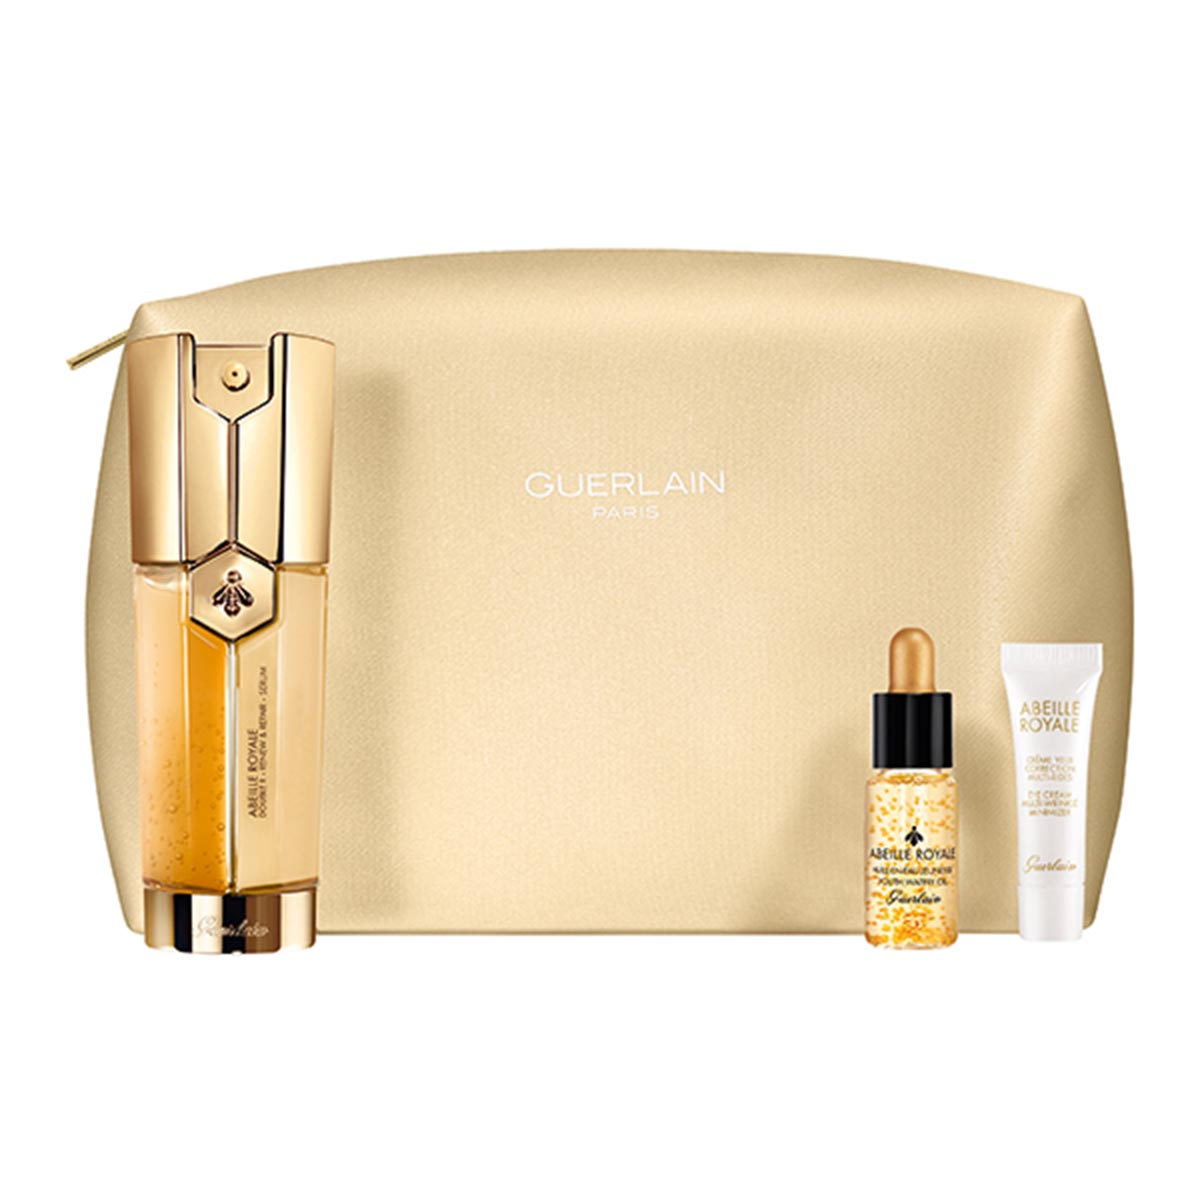 Guerlain abeille royale double r serum 30ml oil 5ml iluminador 5ml